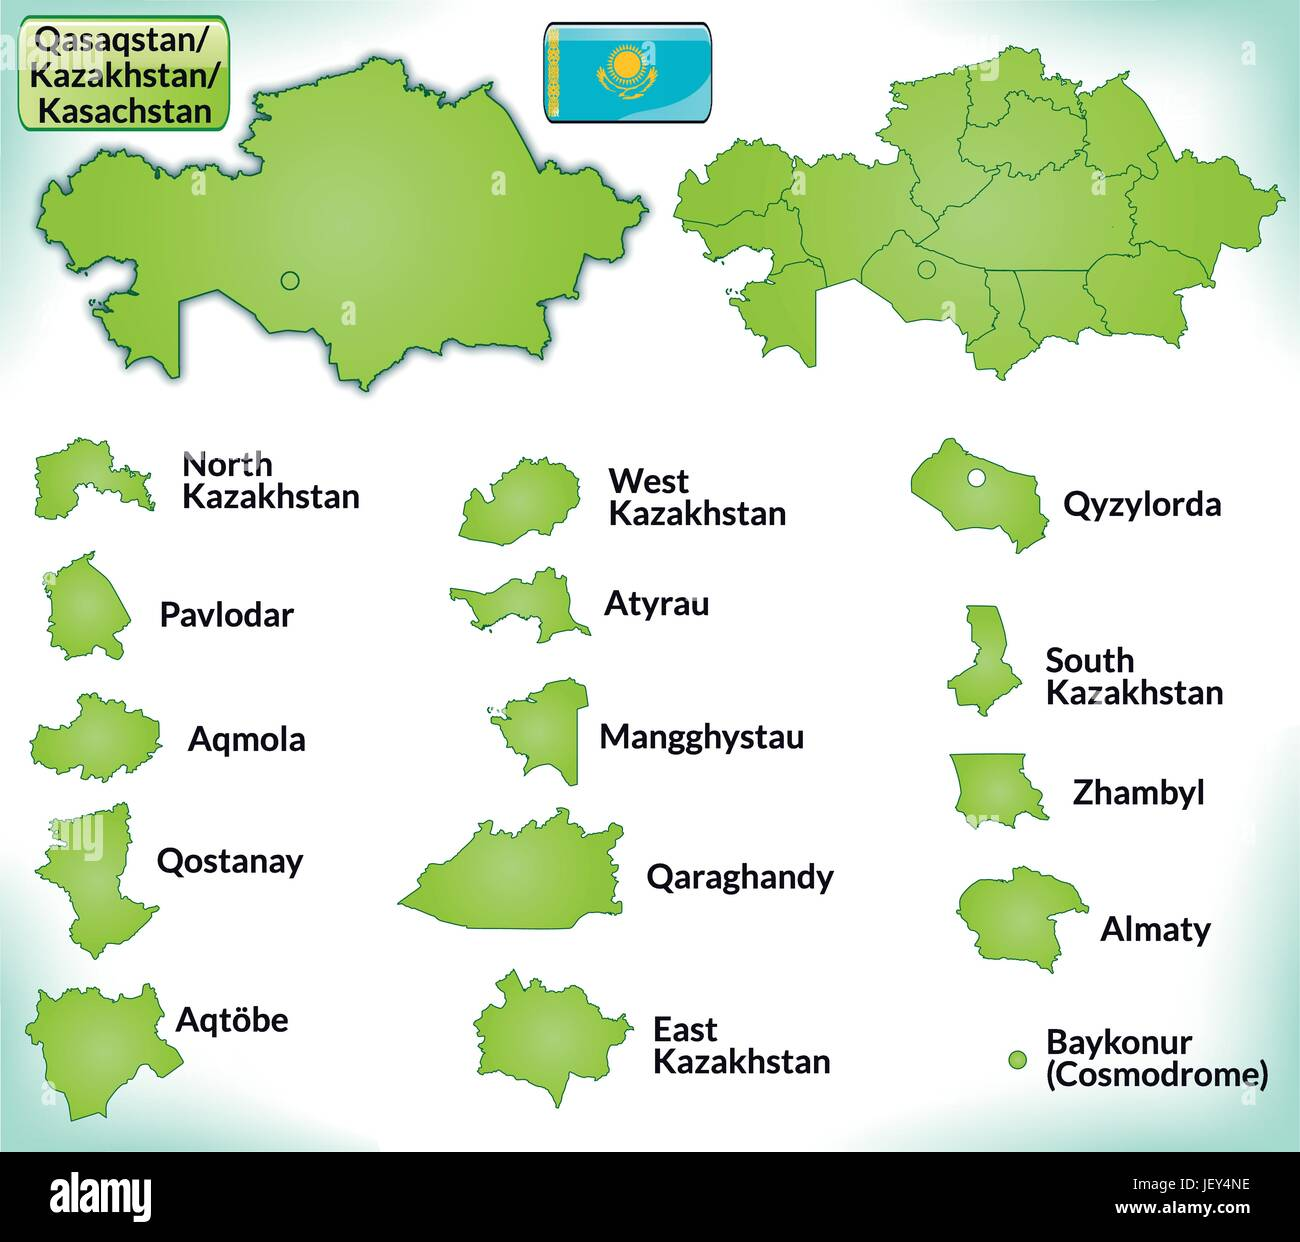 Card outline administration borders state kazakhstan atlas card outline administration borders state kazakhstan atlas map of the publicscrutiny Image collections